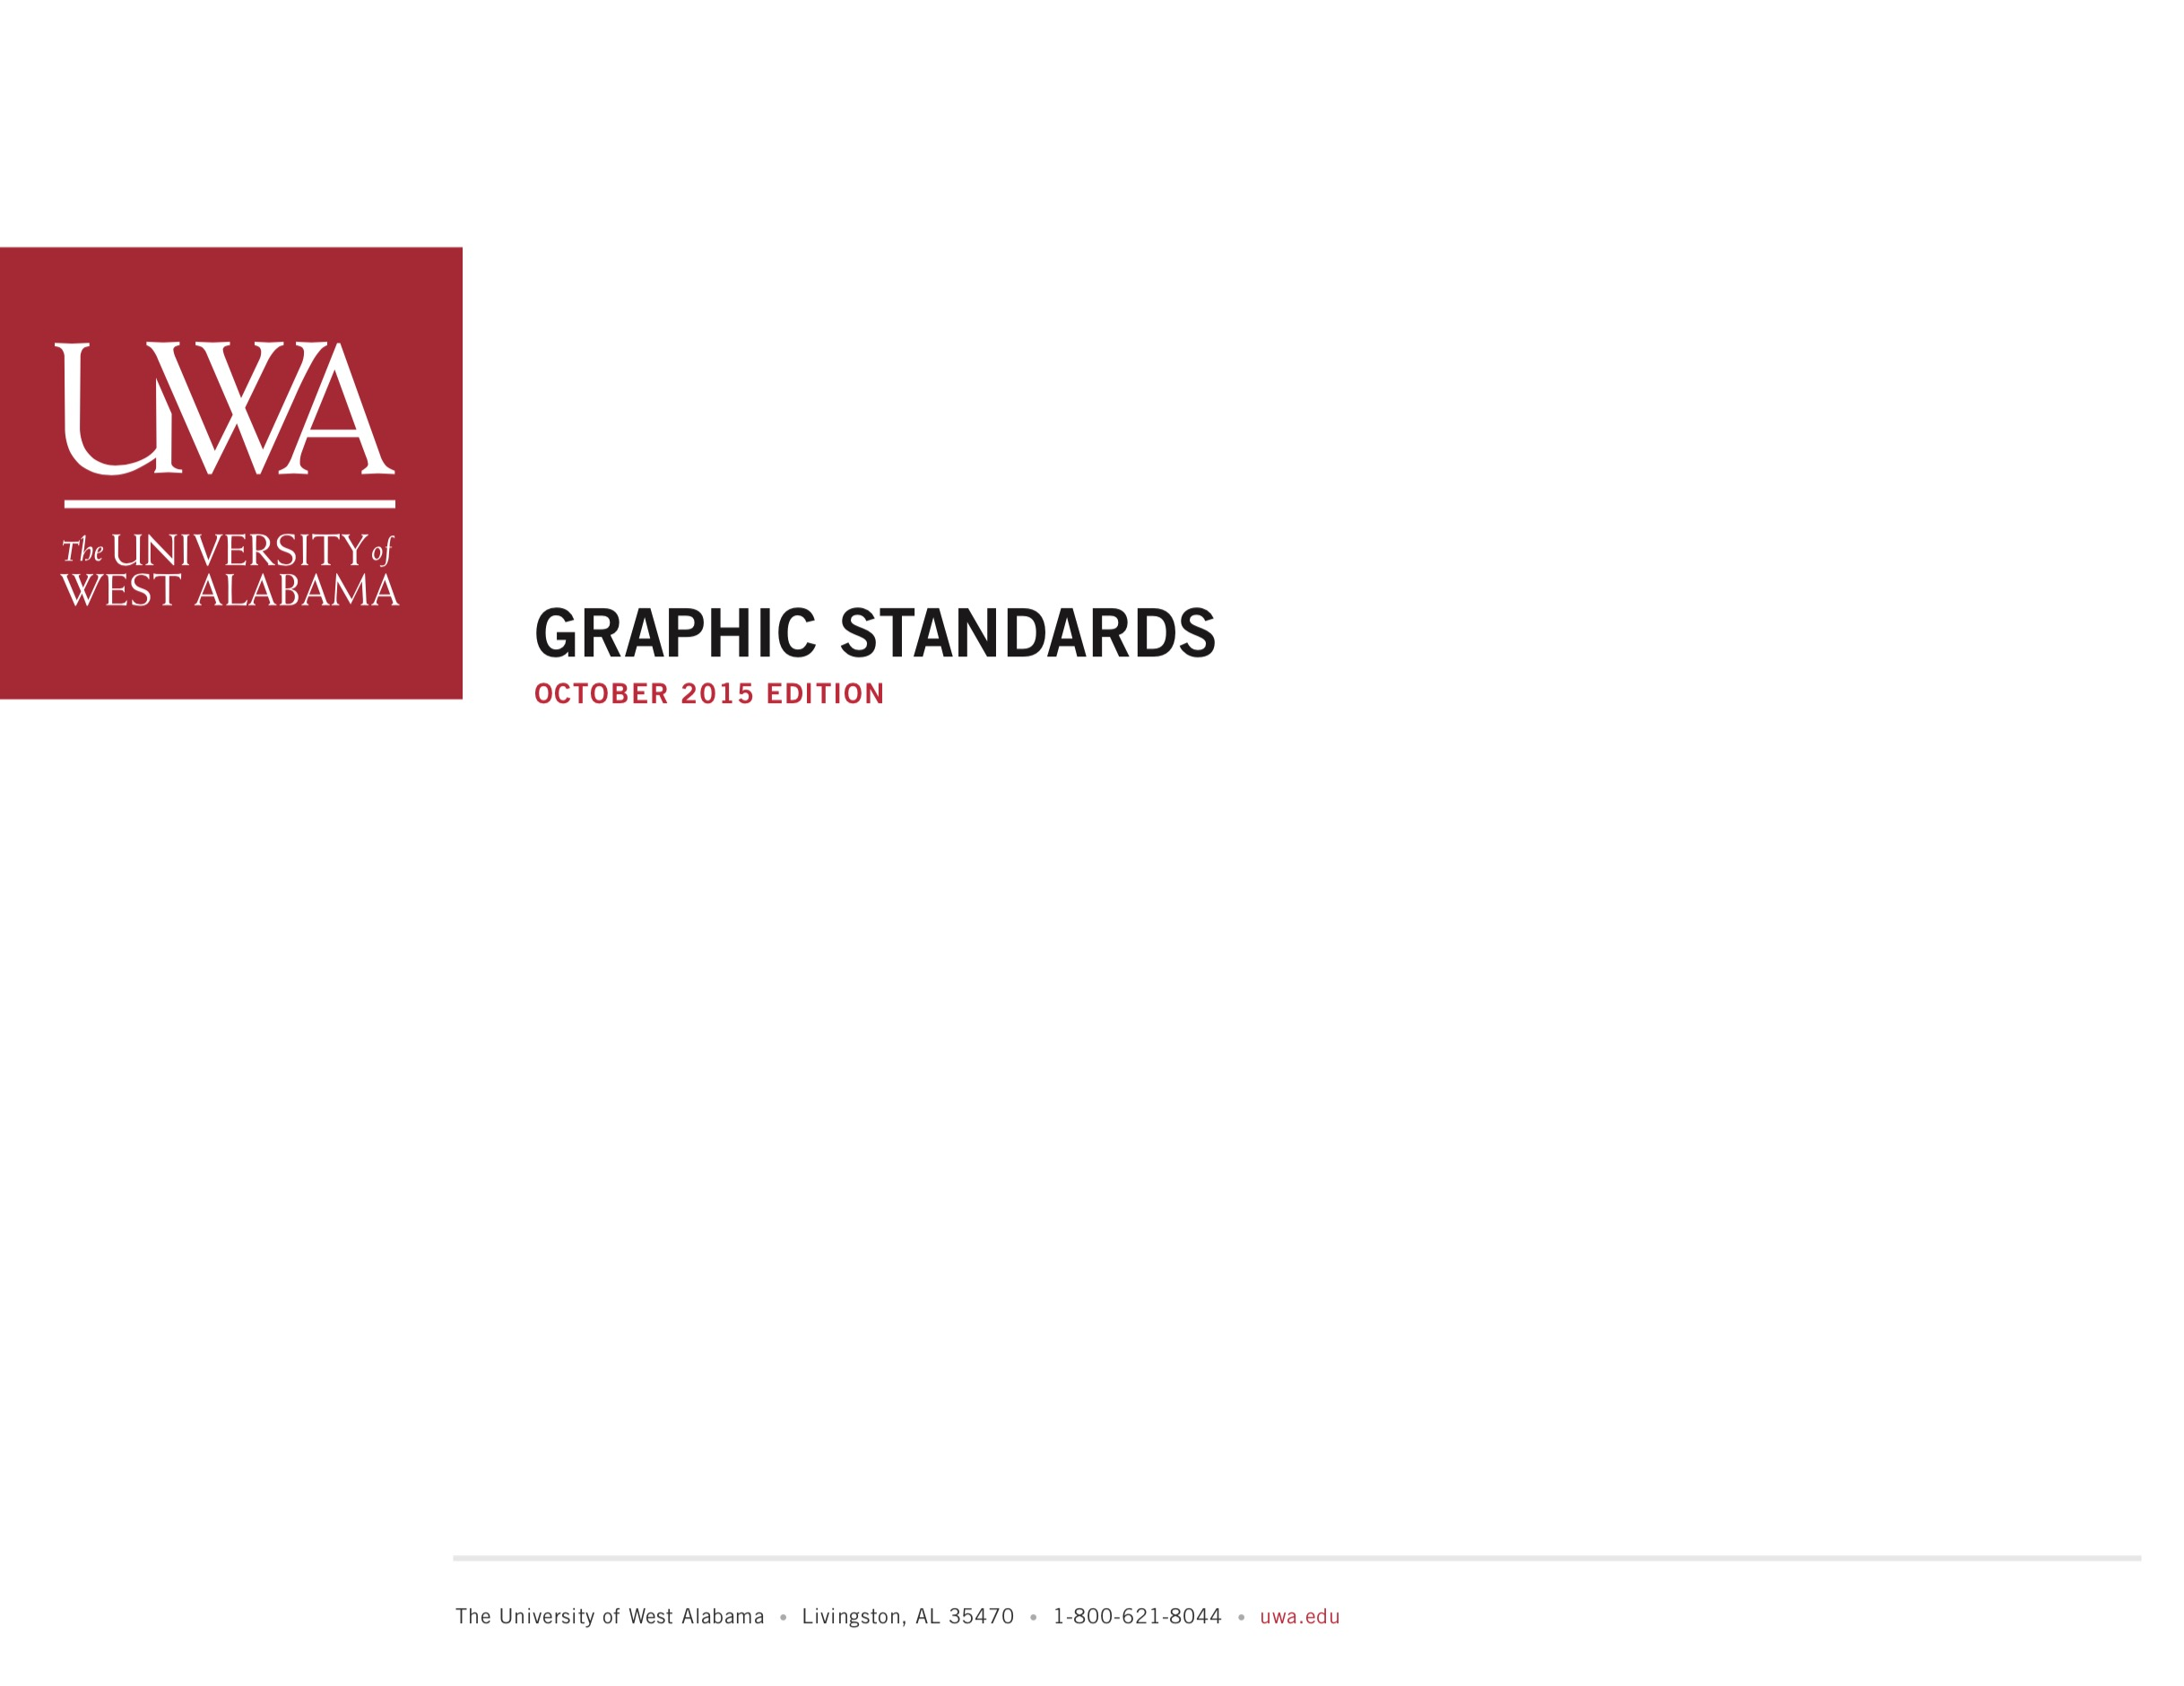 UWA Graphic Standards